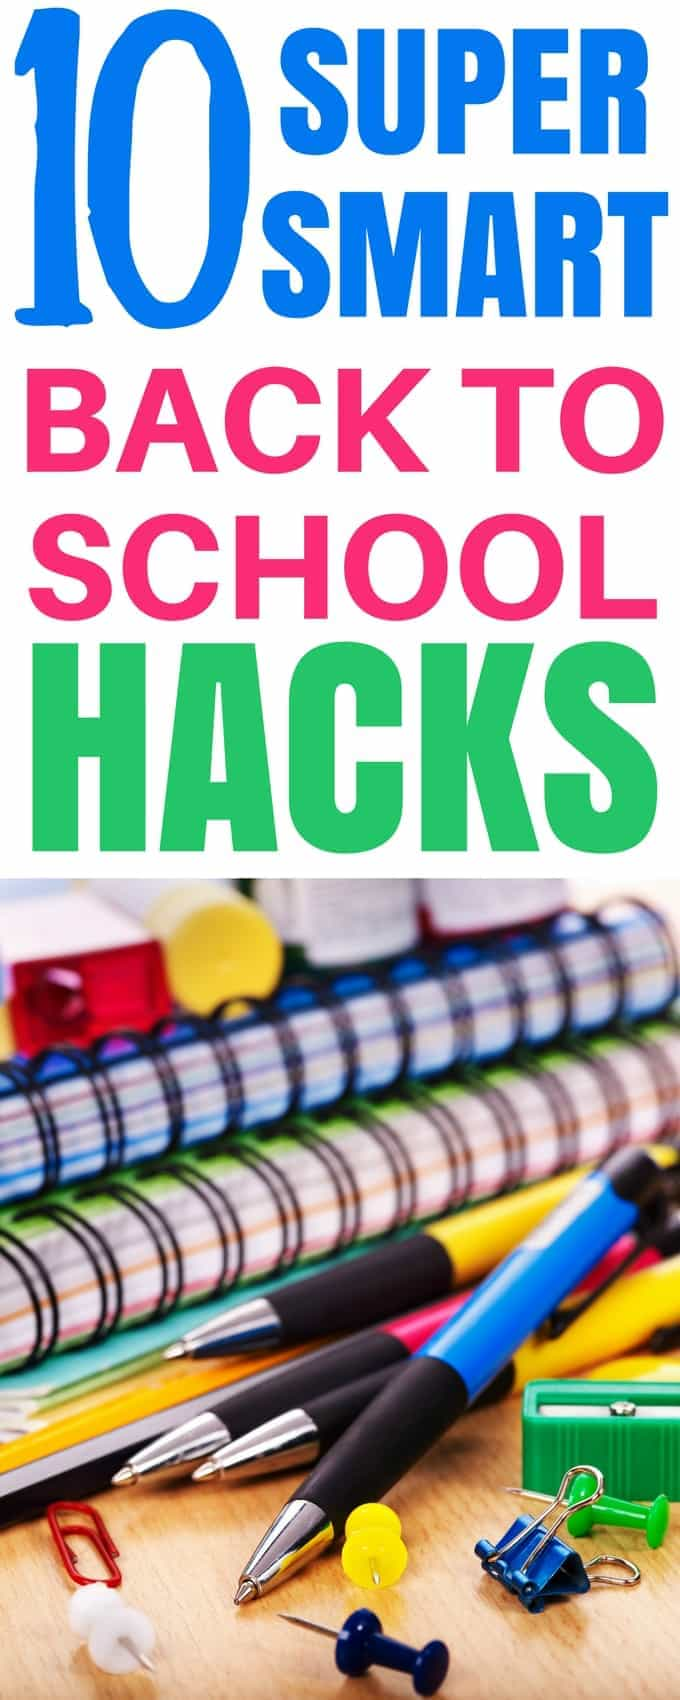 Get organized with THE BEST Smart Back to School Hacks that every Mom will Love! 10 ingenious tips that will help you breeze through the school week and plan ahead!